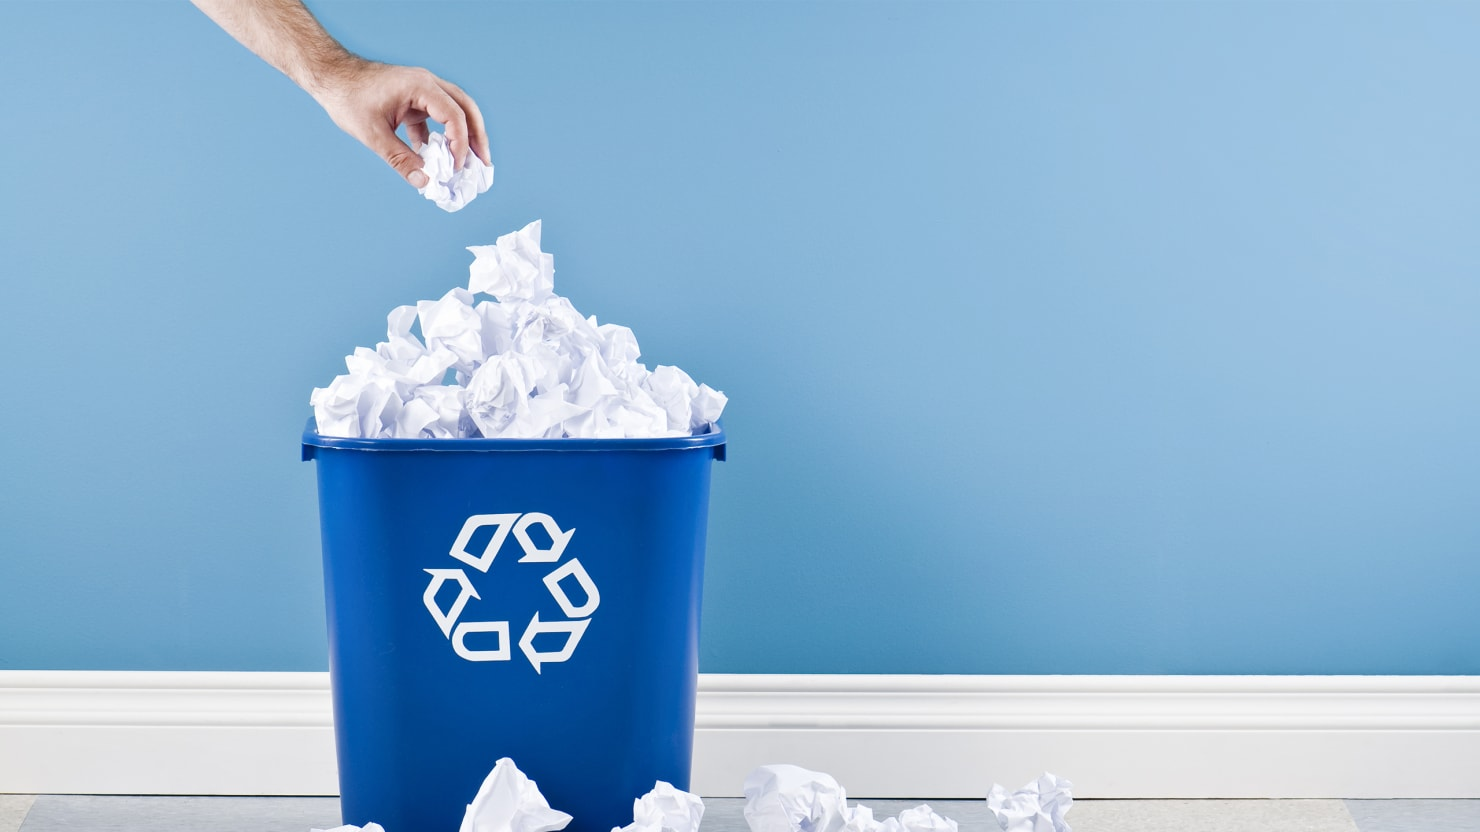 When Should You Not Recycle?